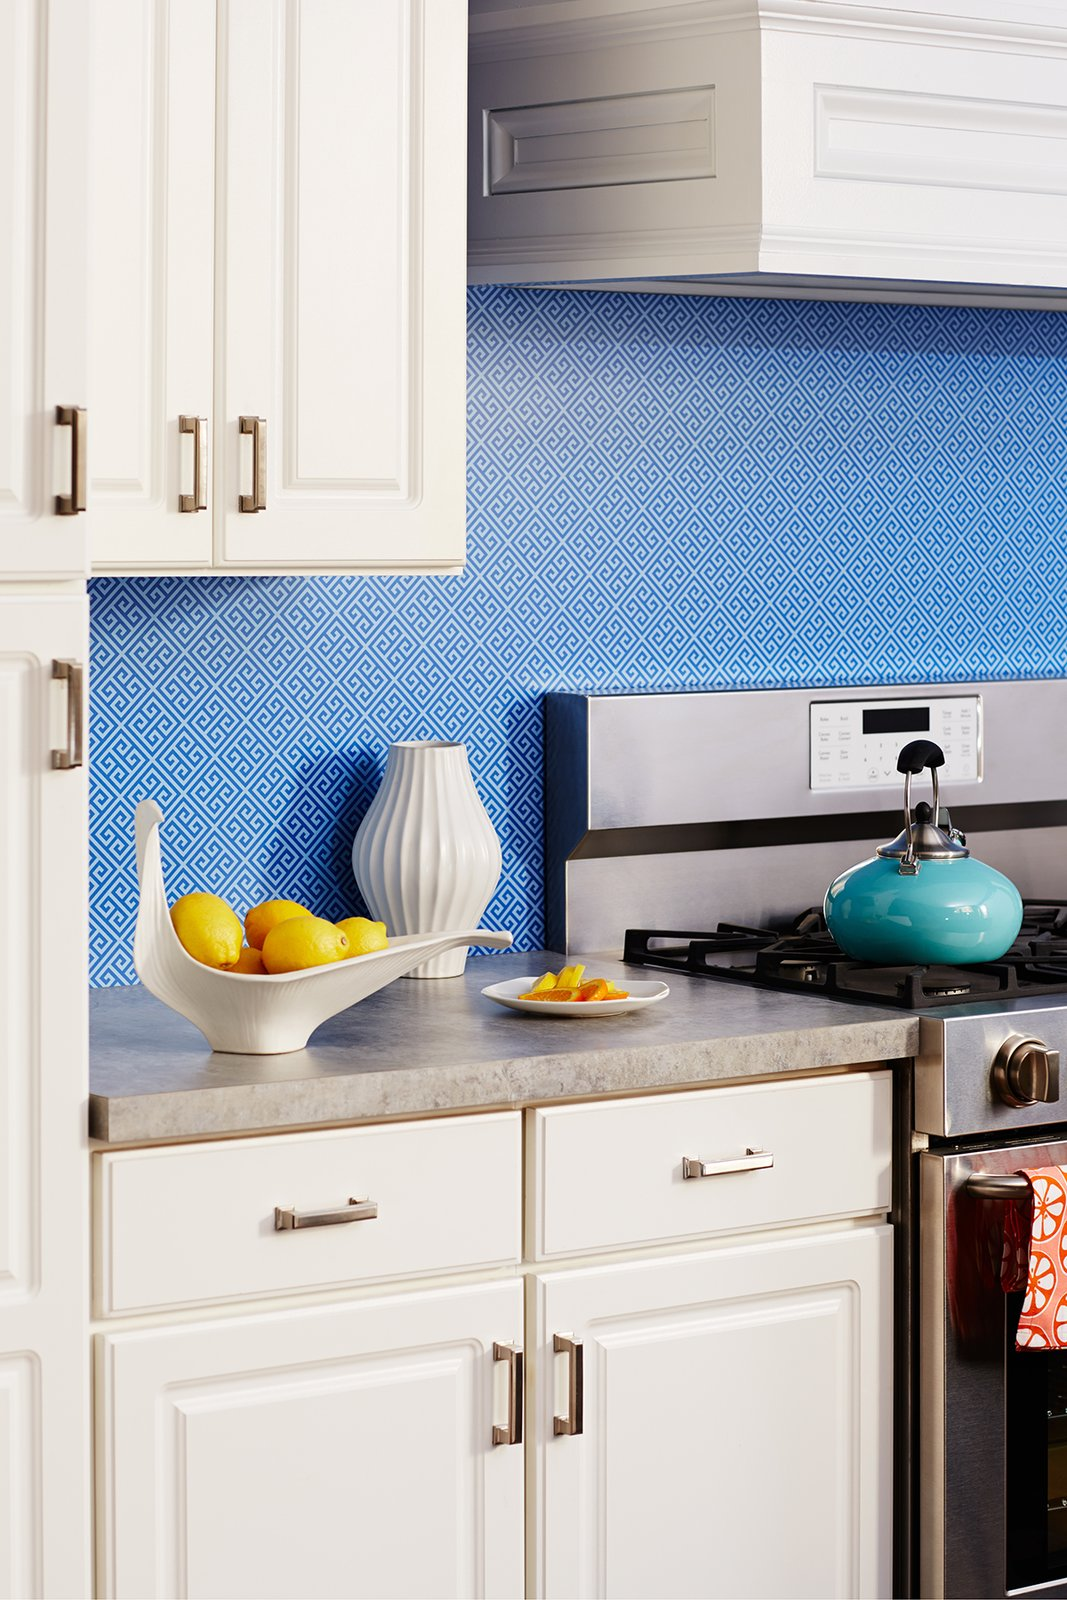 Rendered in sharp blue, the timeless motif of Greek Key is used as this kitchen's backsplash.